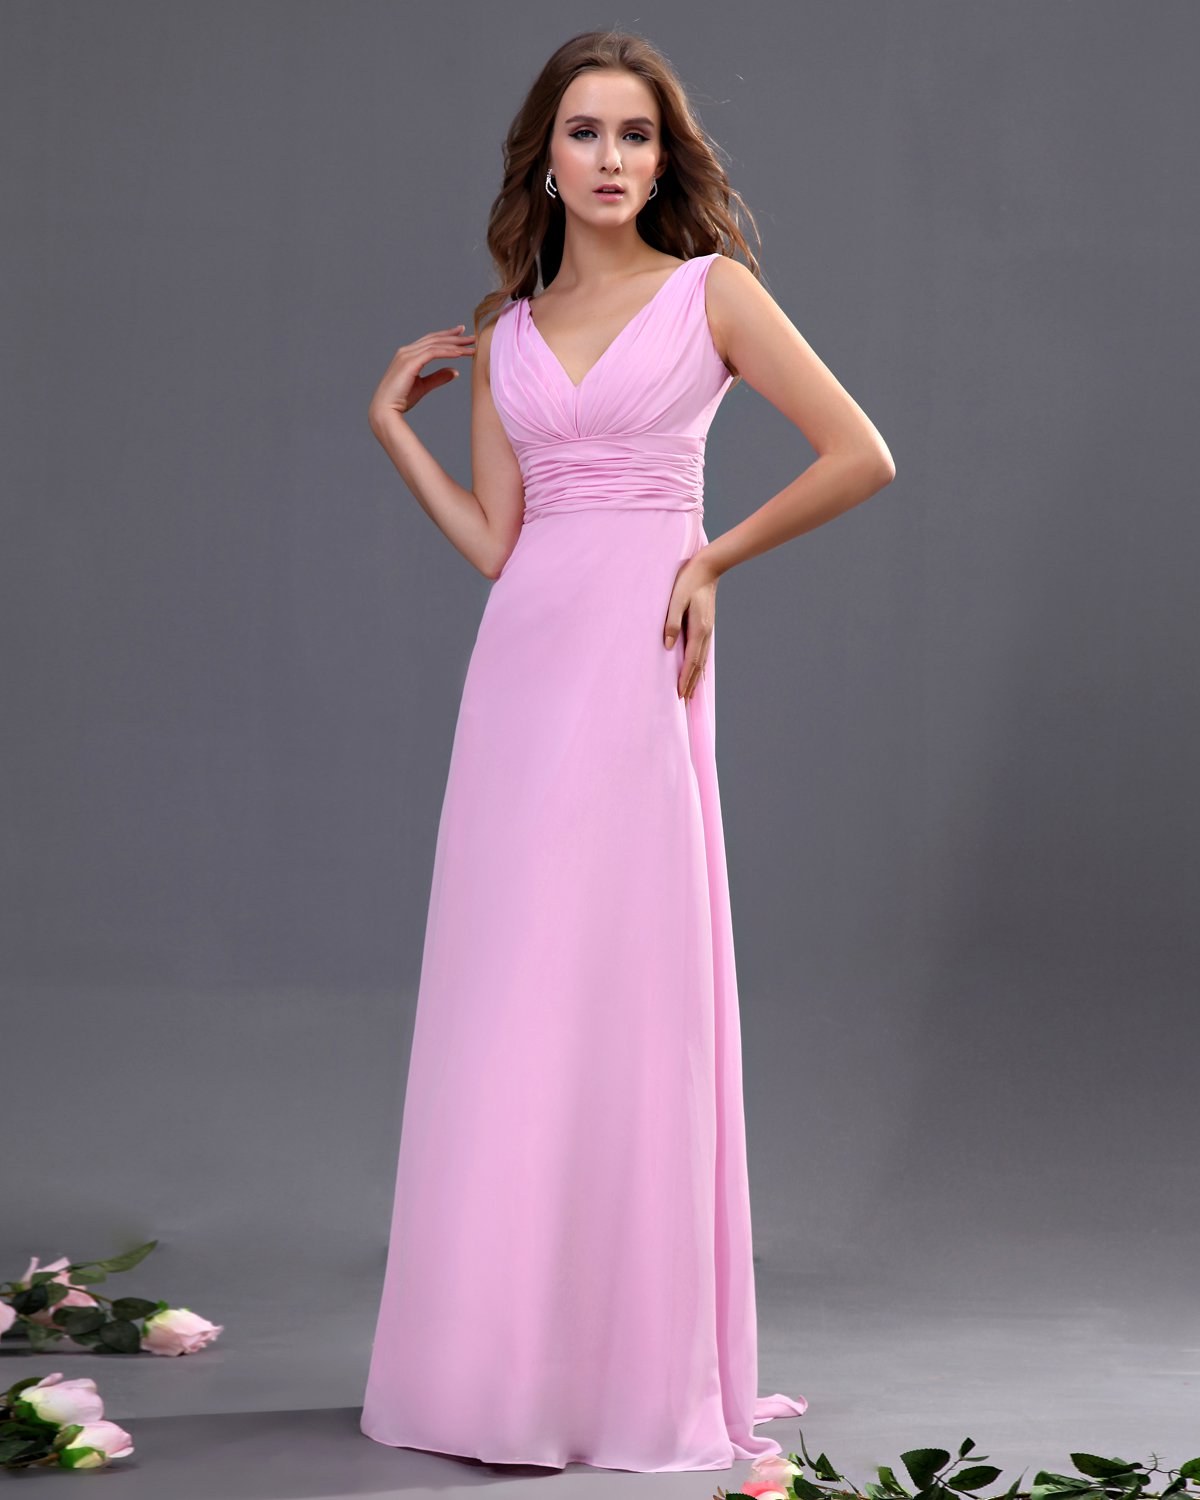 V-neck Sash Floor Length Bridesmaid Dress Gown